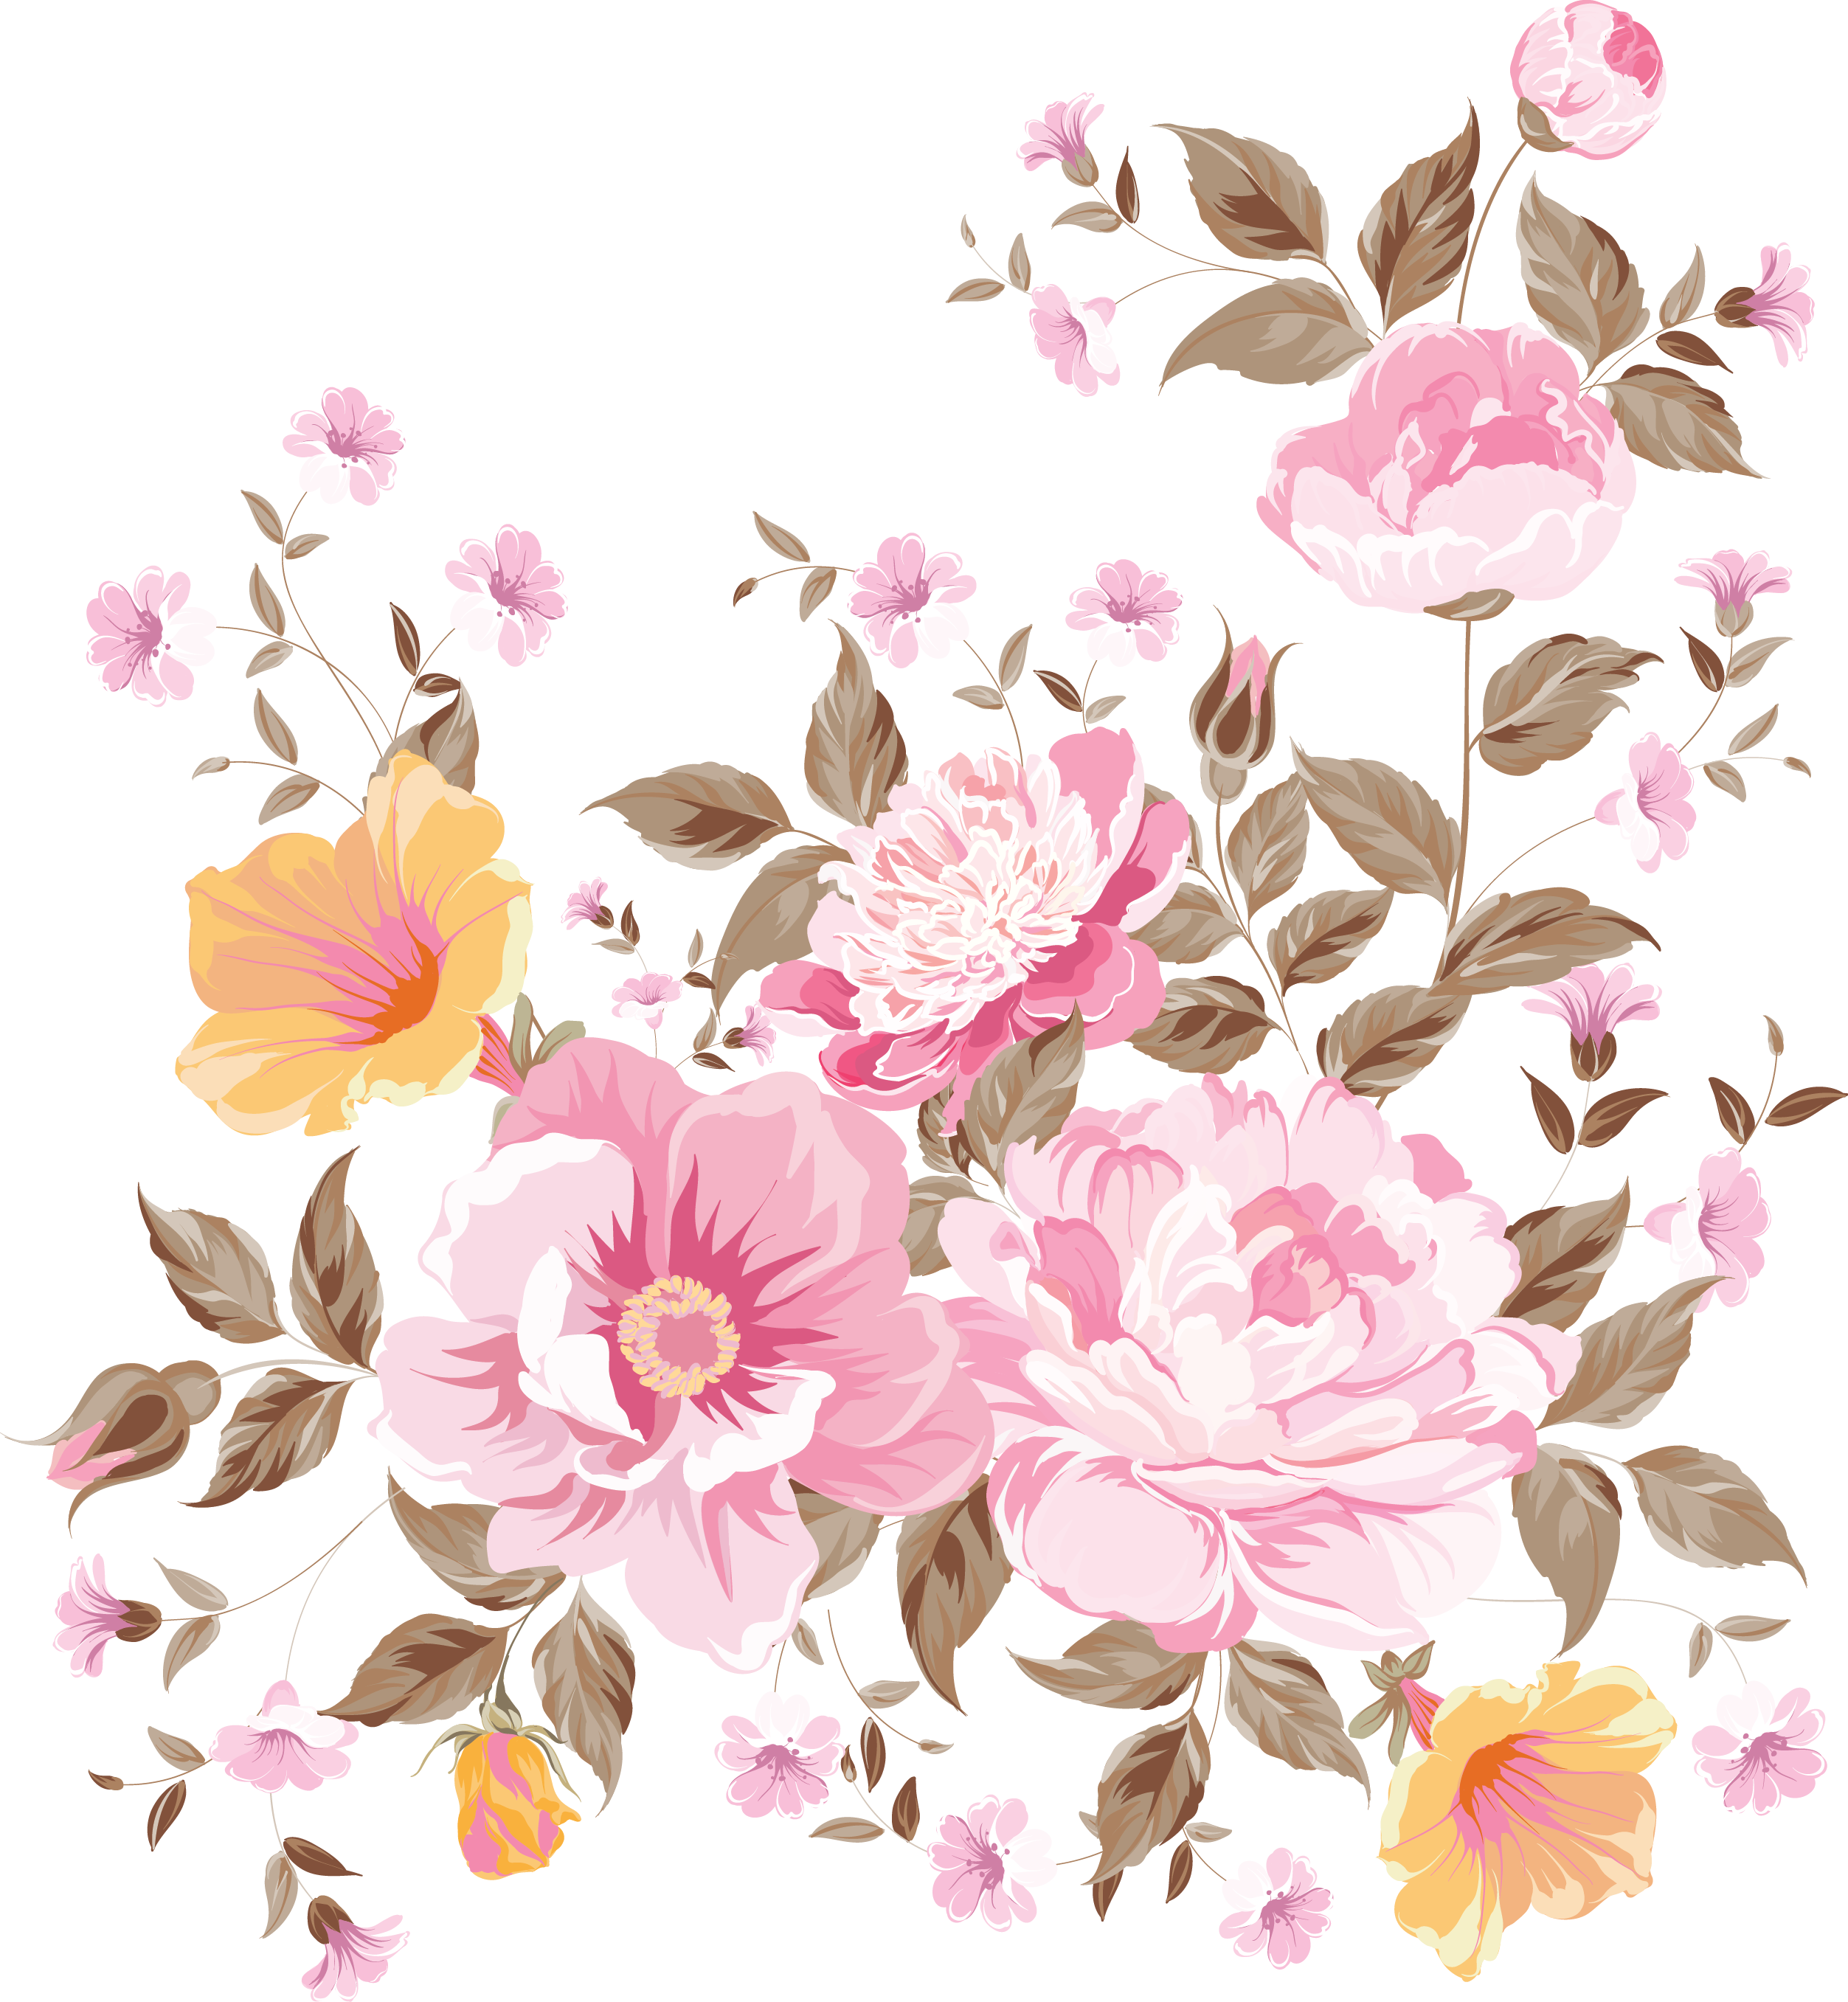 My design beautiful flowers my decoupage design pinterest my design beautiful flowers art clipart bunch of flowers flower art digital izmirmasajfo